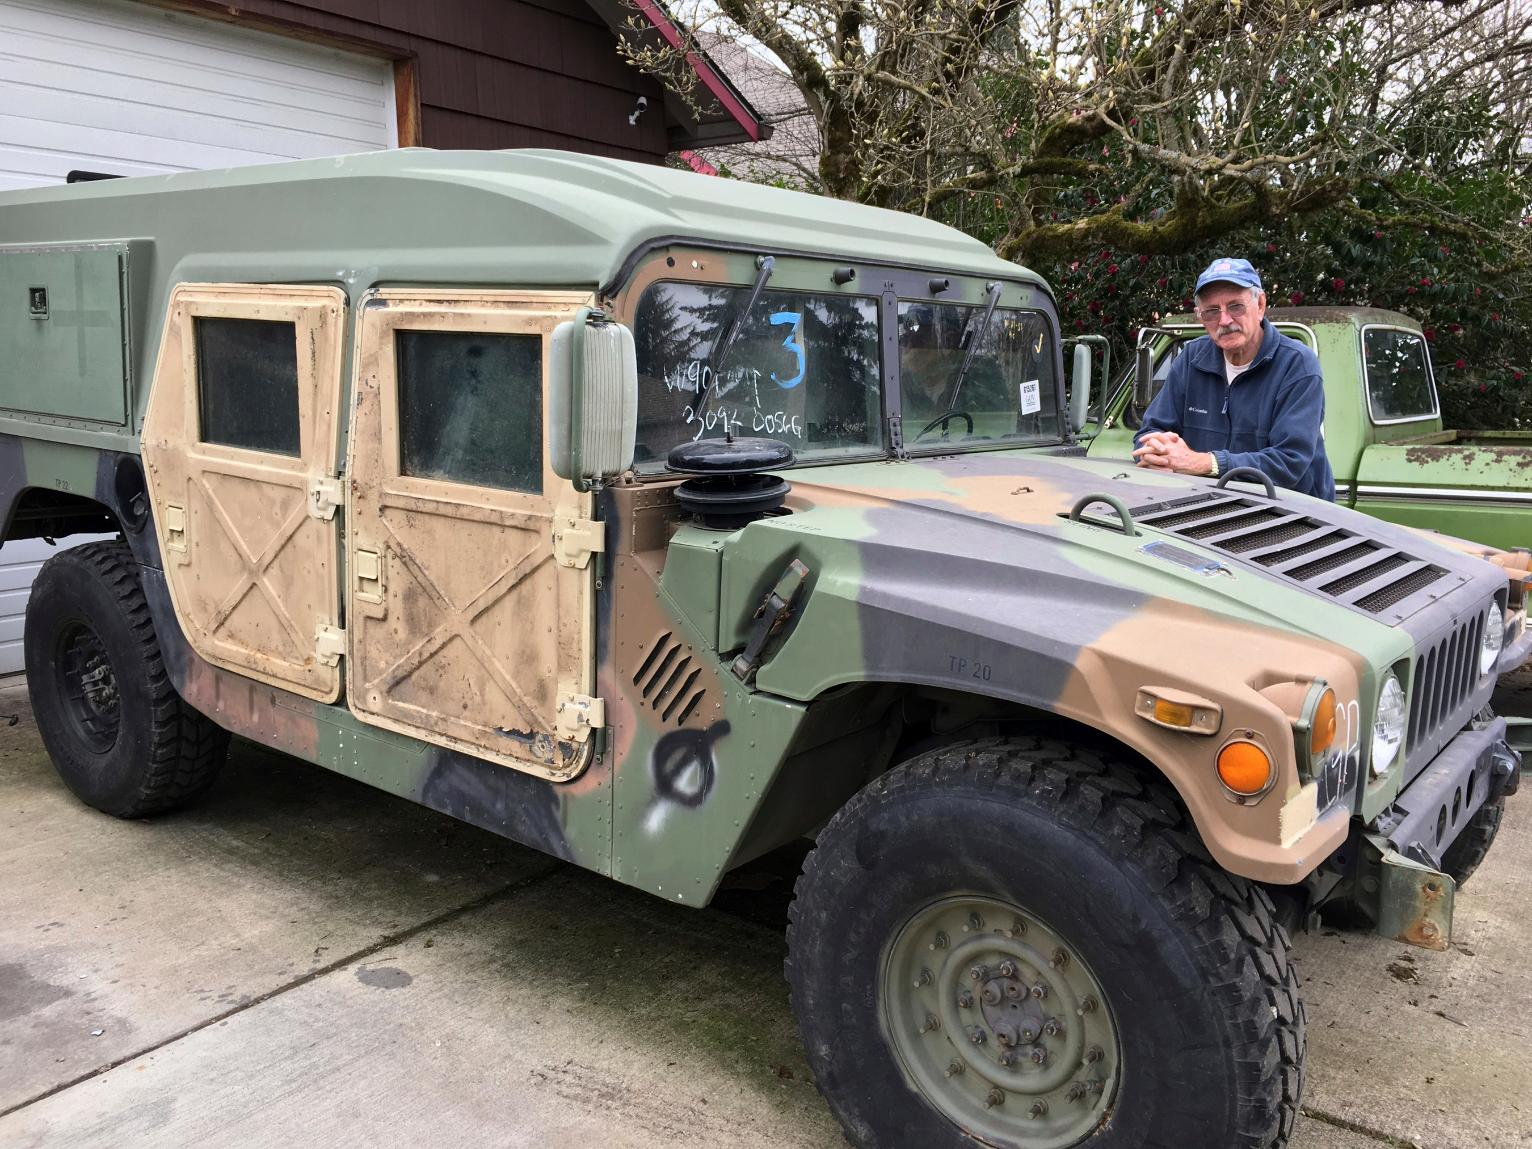 Oregon Drivers May Share Roads With Military Surplus